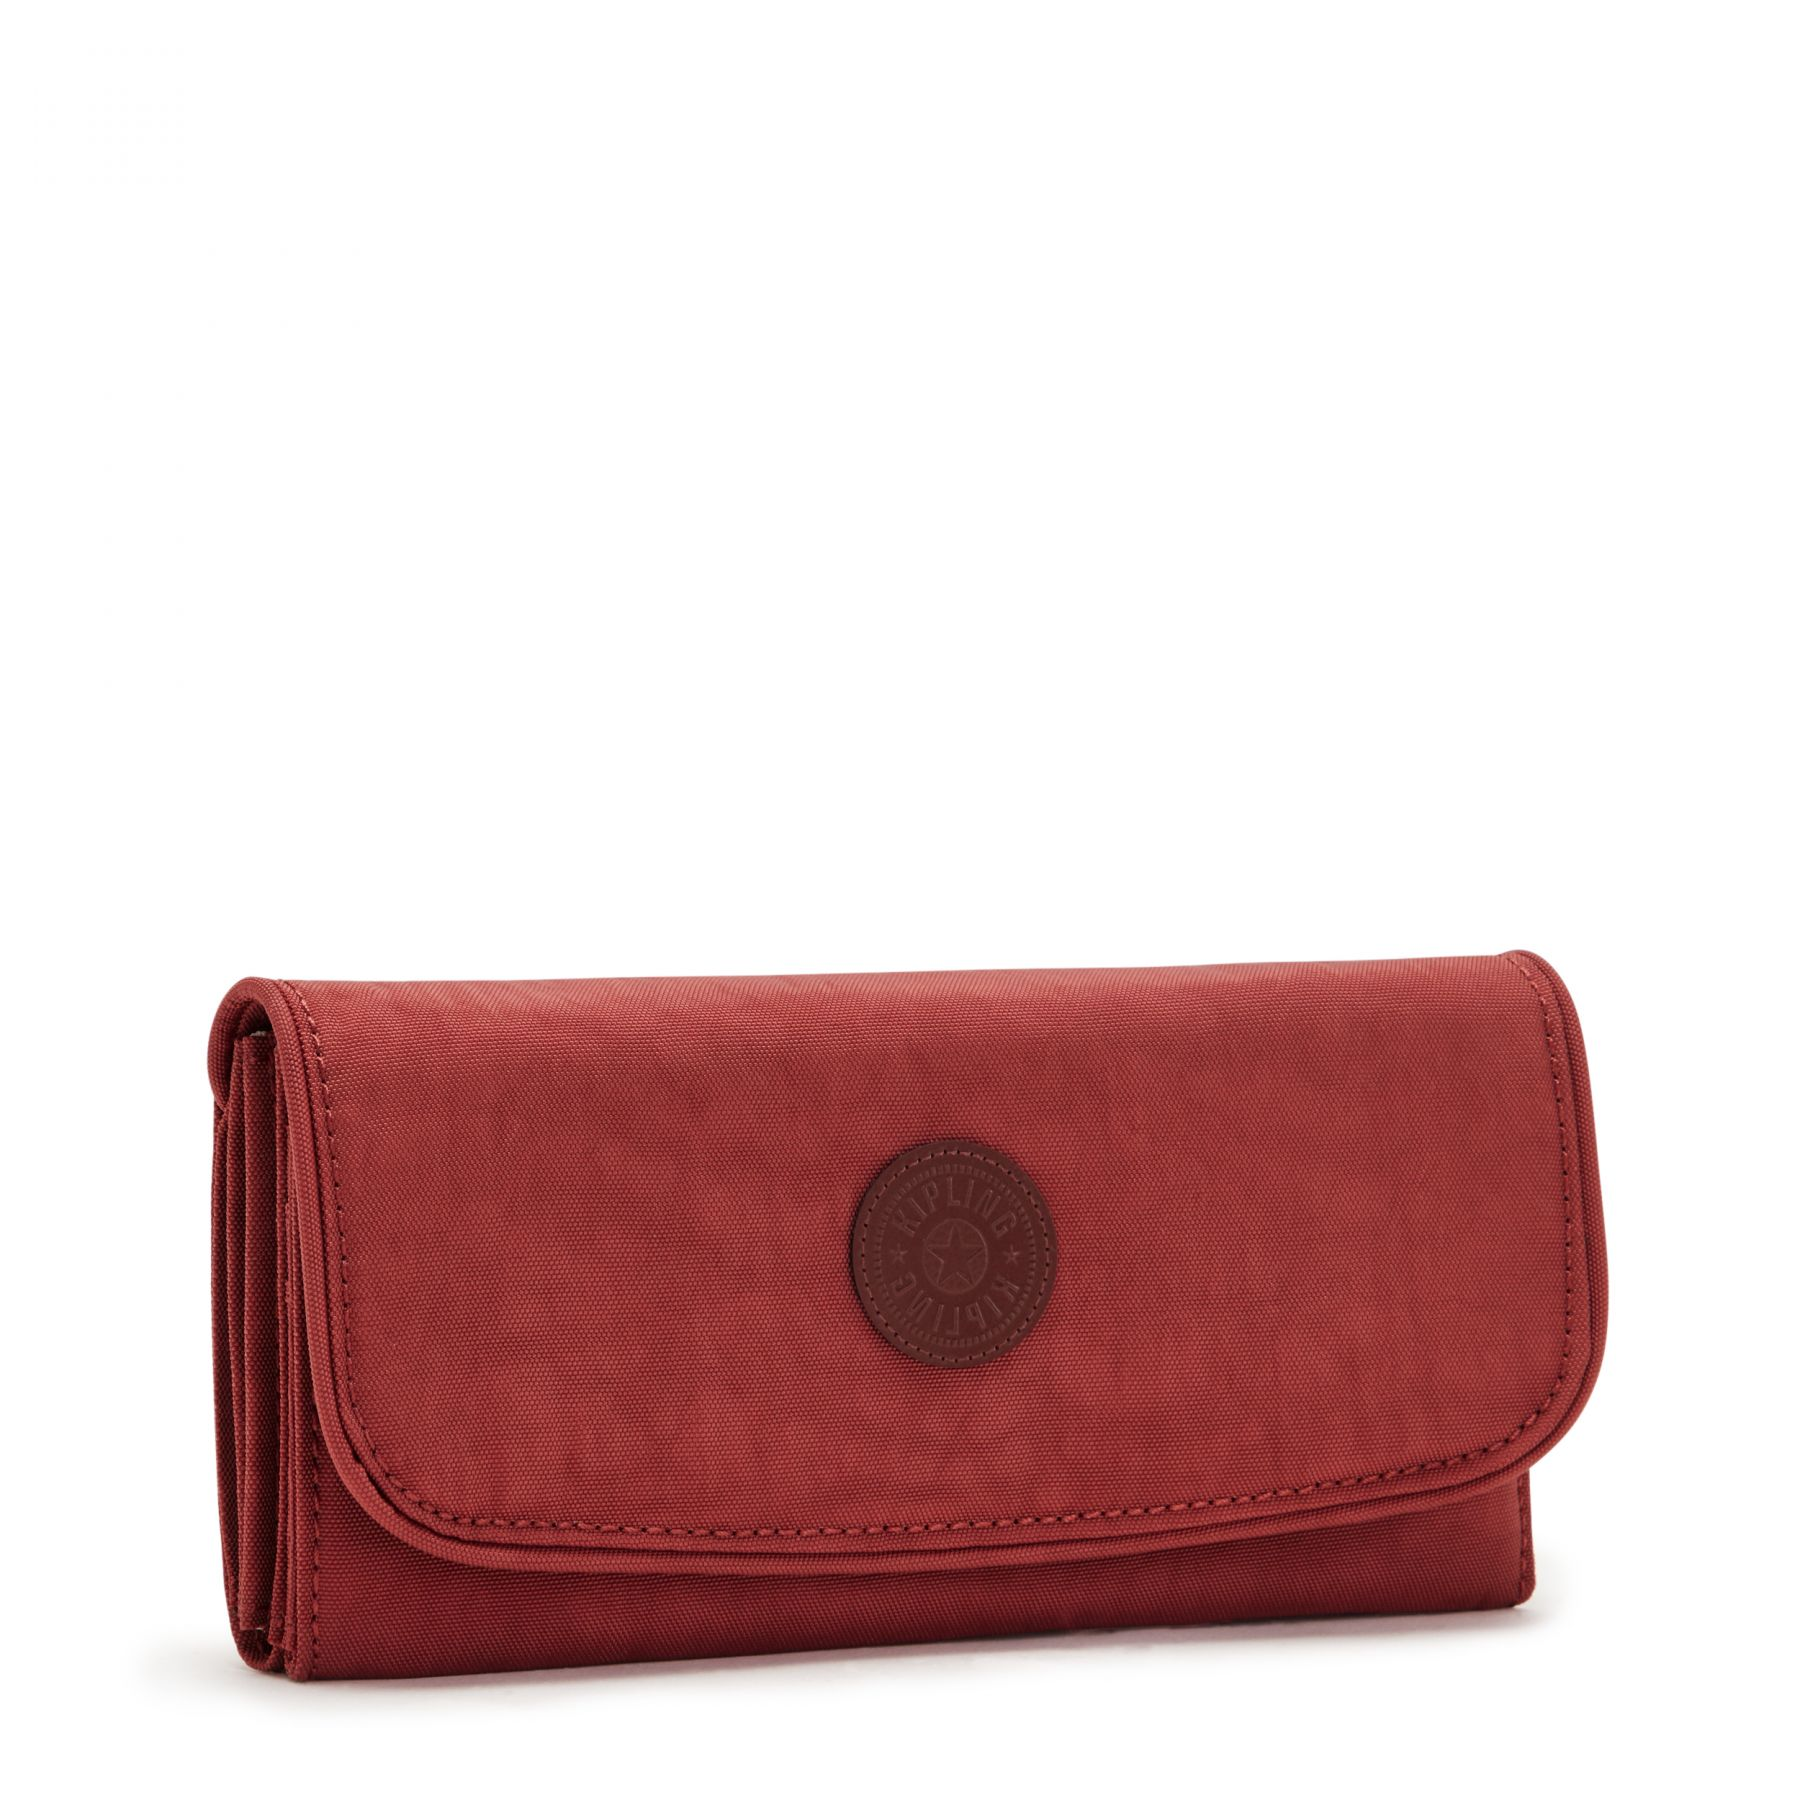 MONEY LAND ACCESSORIES by Kipling - view 4